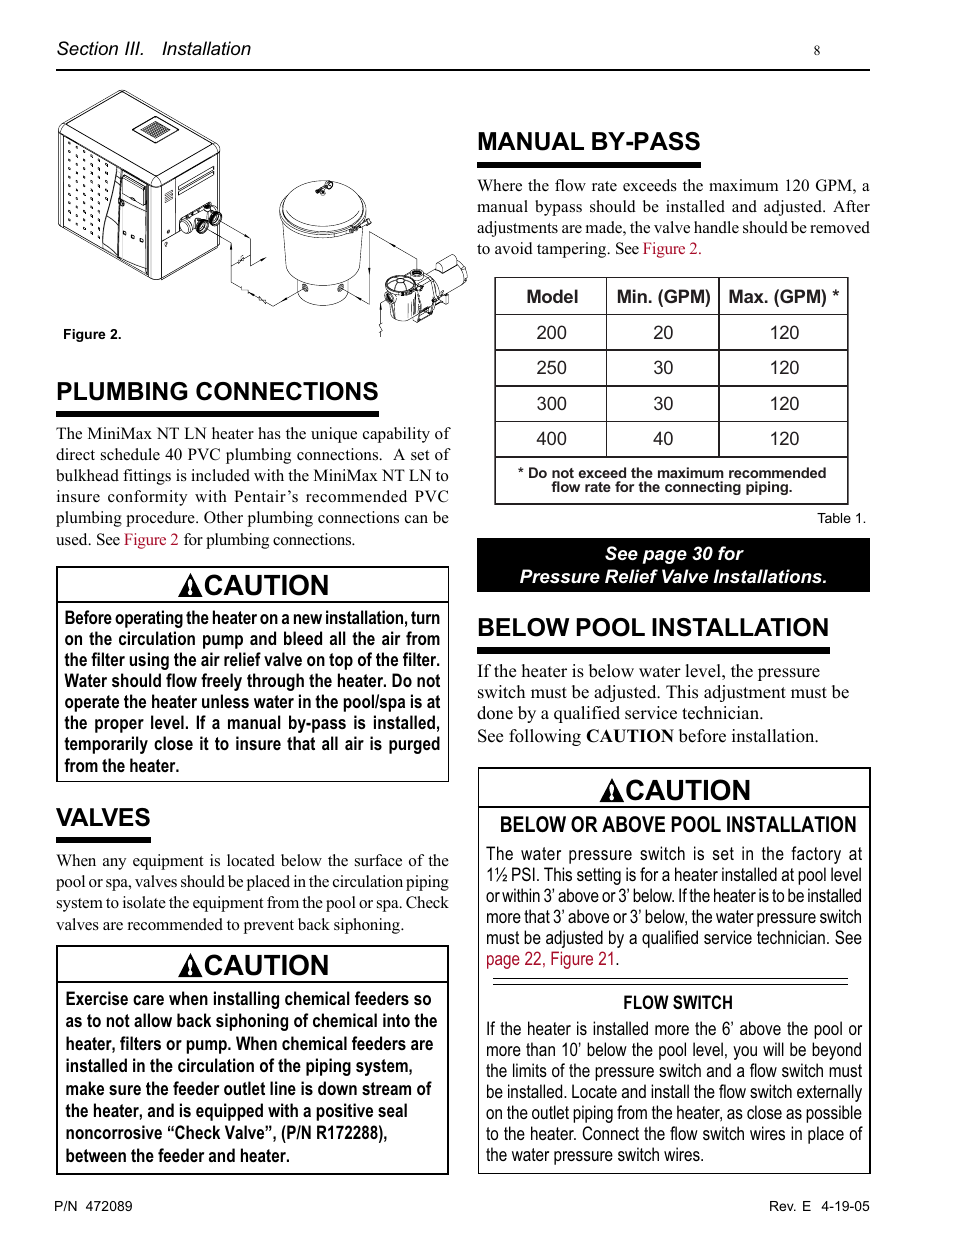 Caution Plumbing Connections Valves Pentair Minimax Nt Ln User Pool Heater Wiring Diagram Manual By Pass Below Installation